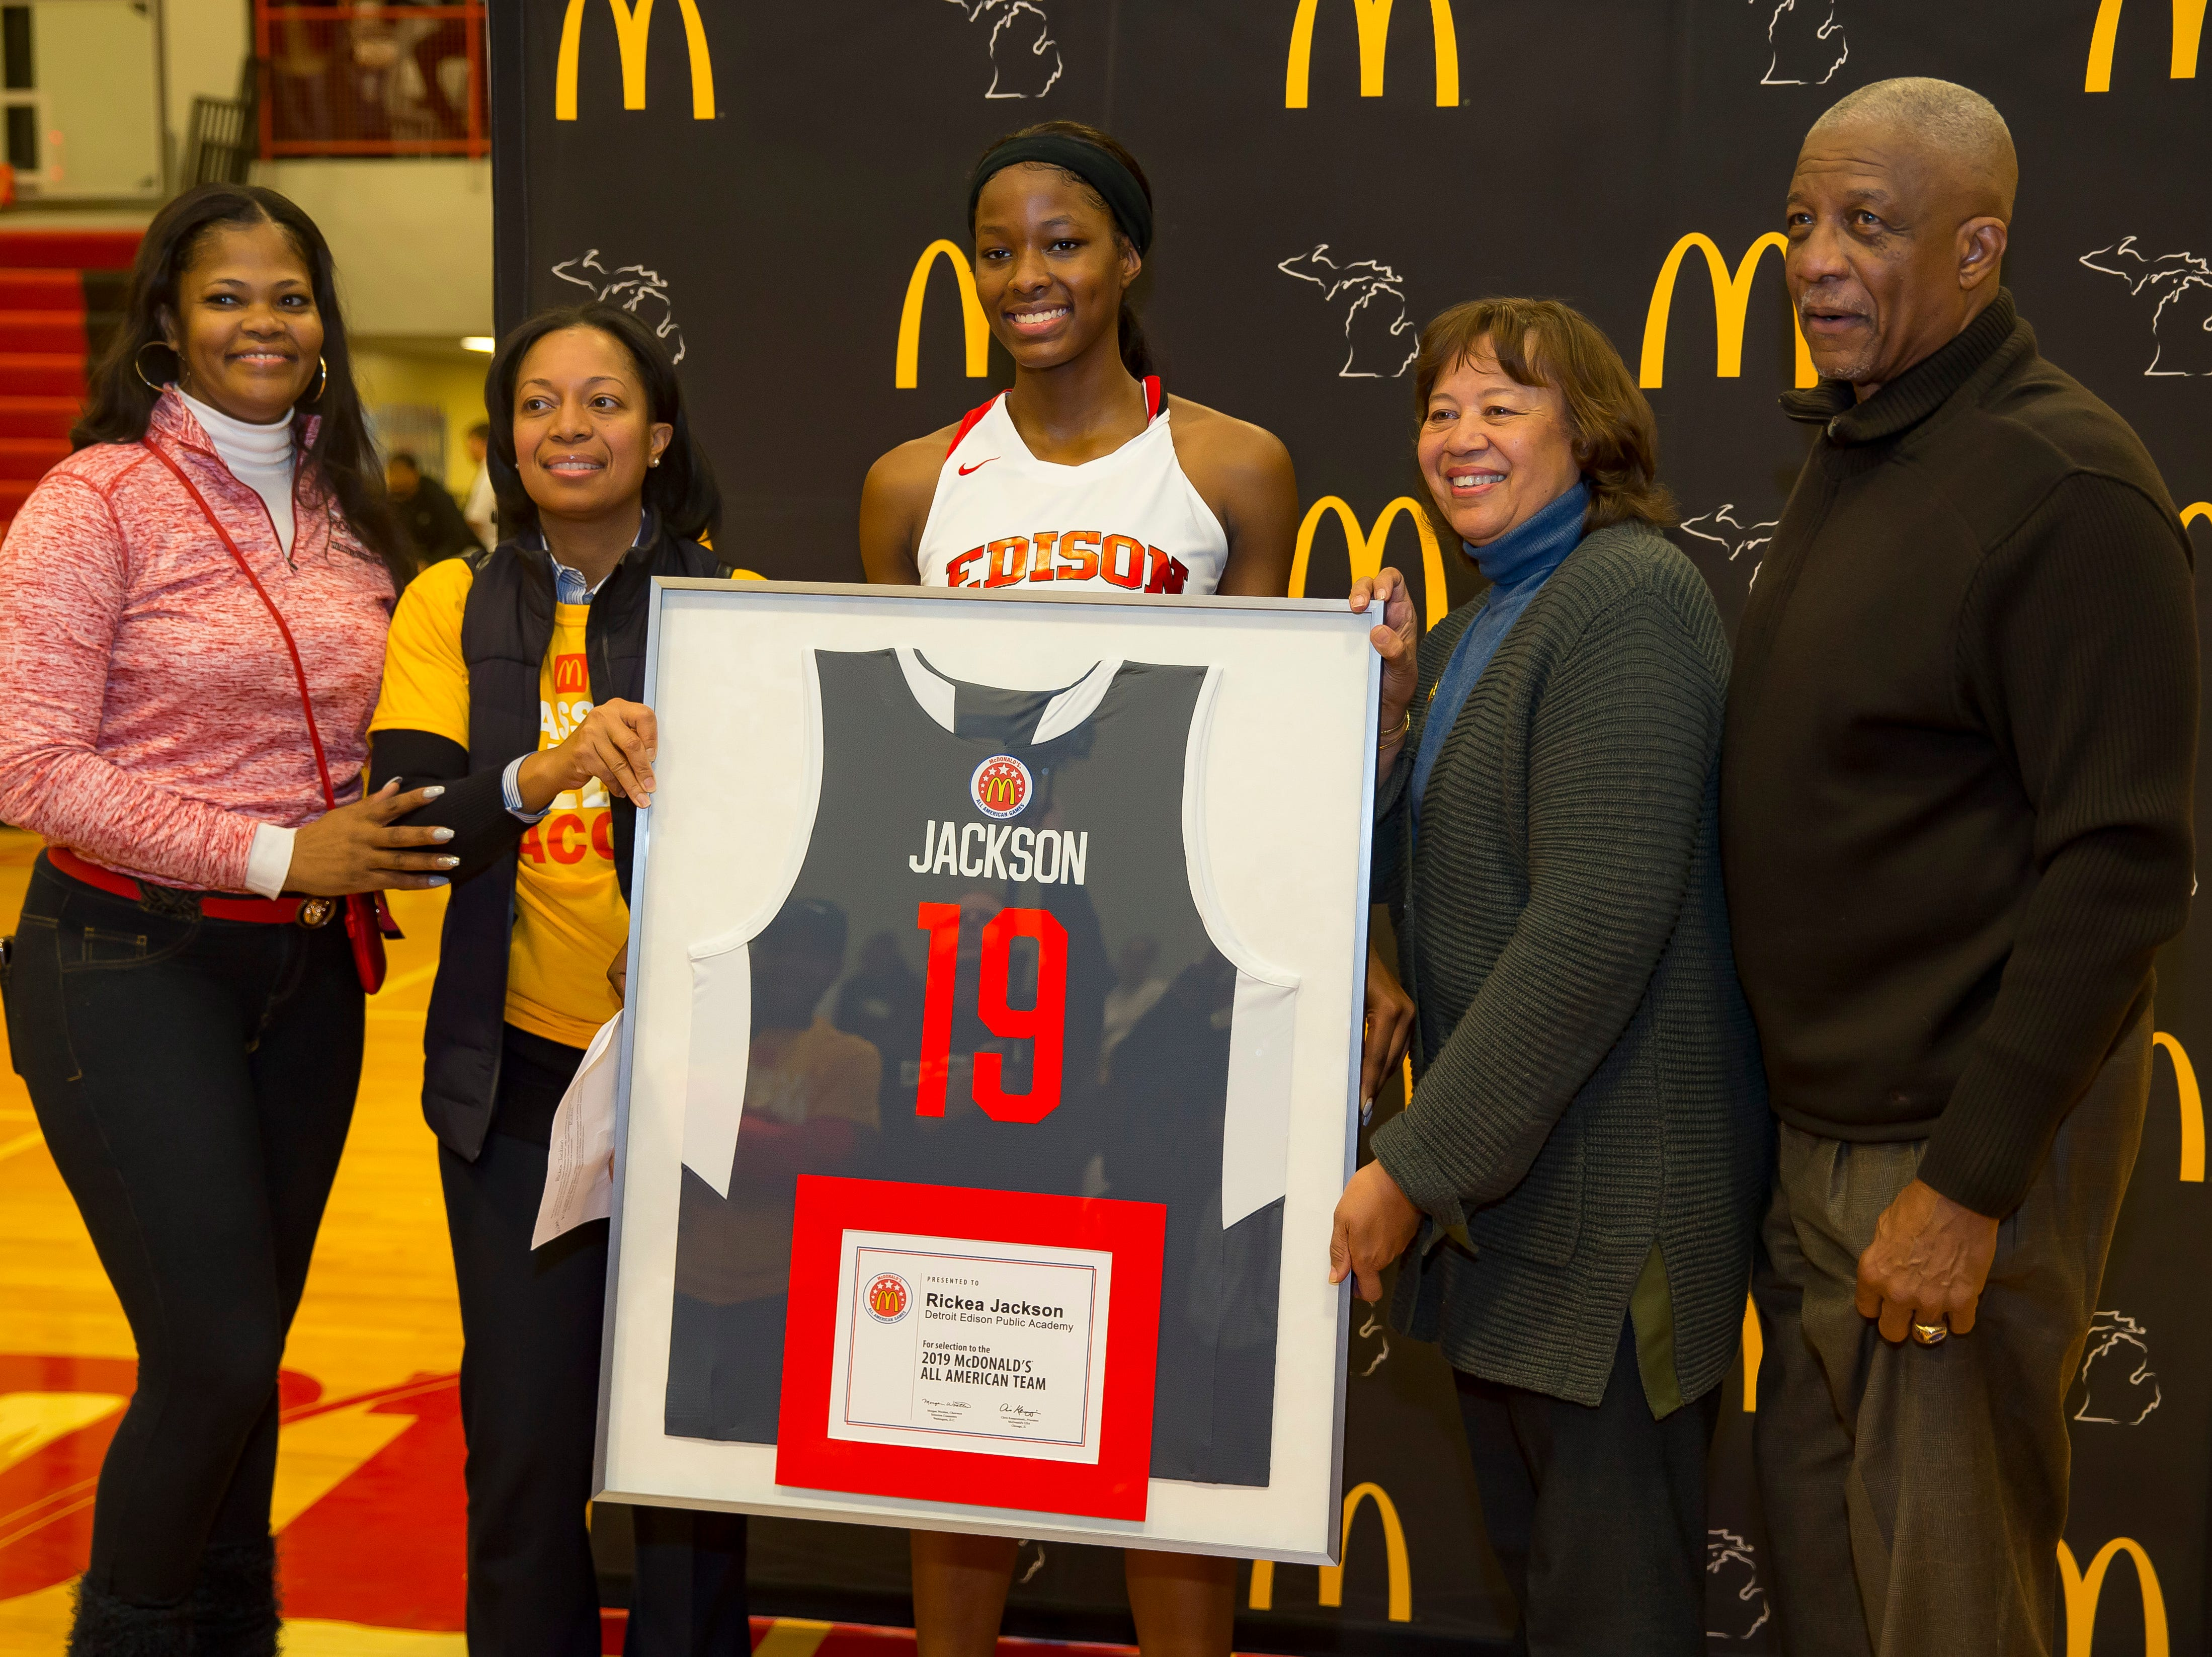 Rickea Jackson of Edison Academy is presented the 2019 McDonalds All American Team jersey at half time the game against Detroit Renaissance at Edison Academy High School. From L to R Rickea's Mom Caryn Jackson, Joni Thrower, McDonalds owner, Rickea Jackson, Marla Thrower, McDonalds owner, and James Thrower, McDonalds owner.  Edison Academy defeated Detroit Renaissance 67-26.